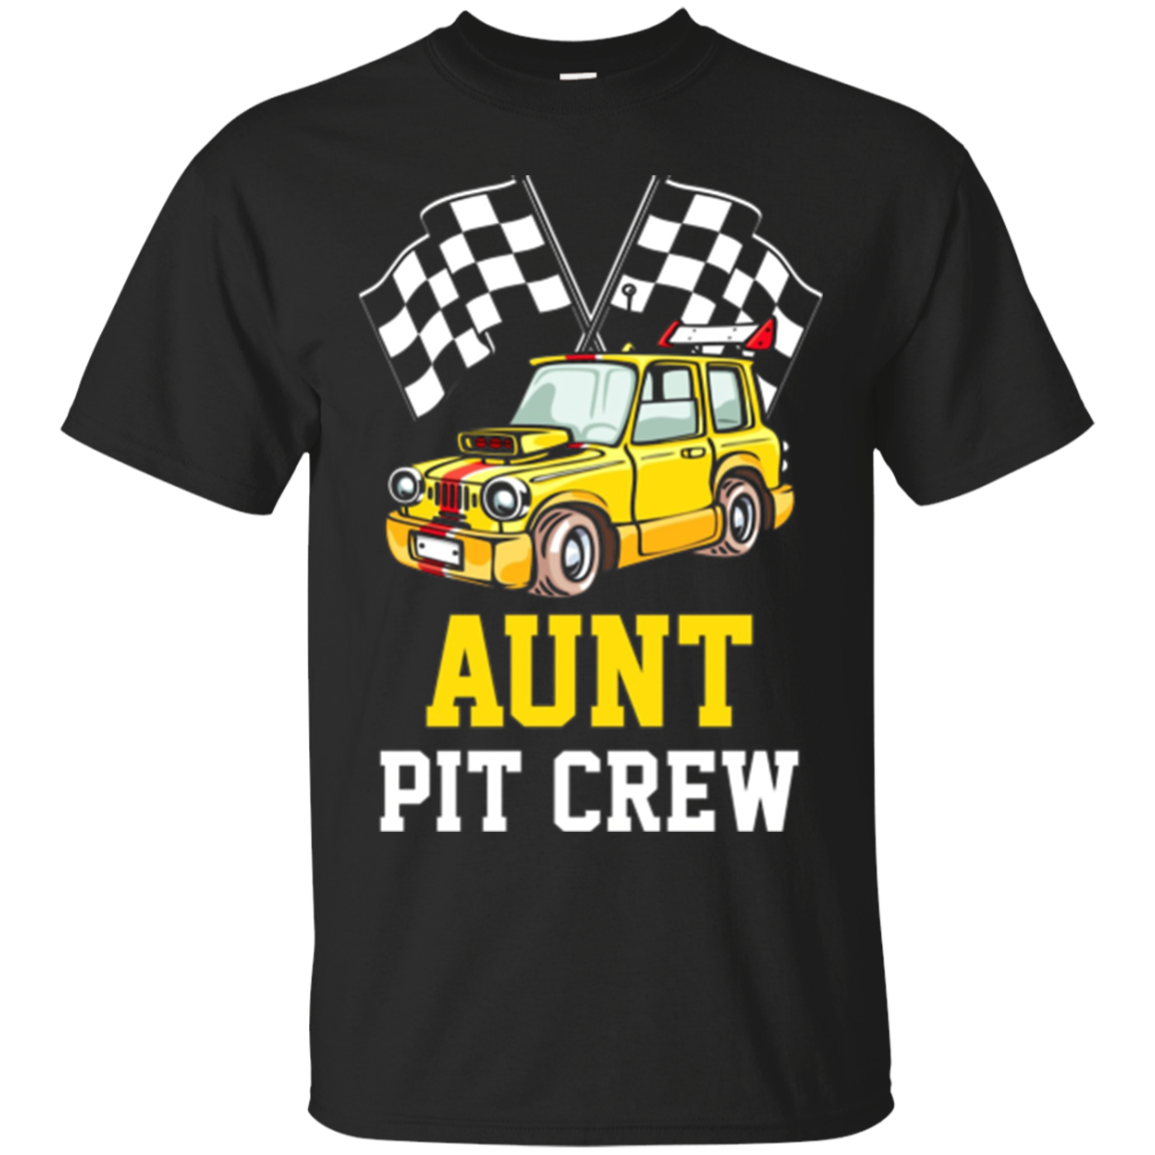 Pit Crew AUNT Back Print Long Sleeve T-Shirt Race Car